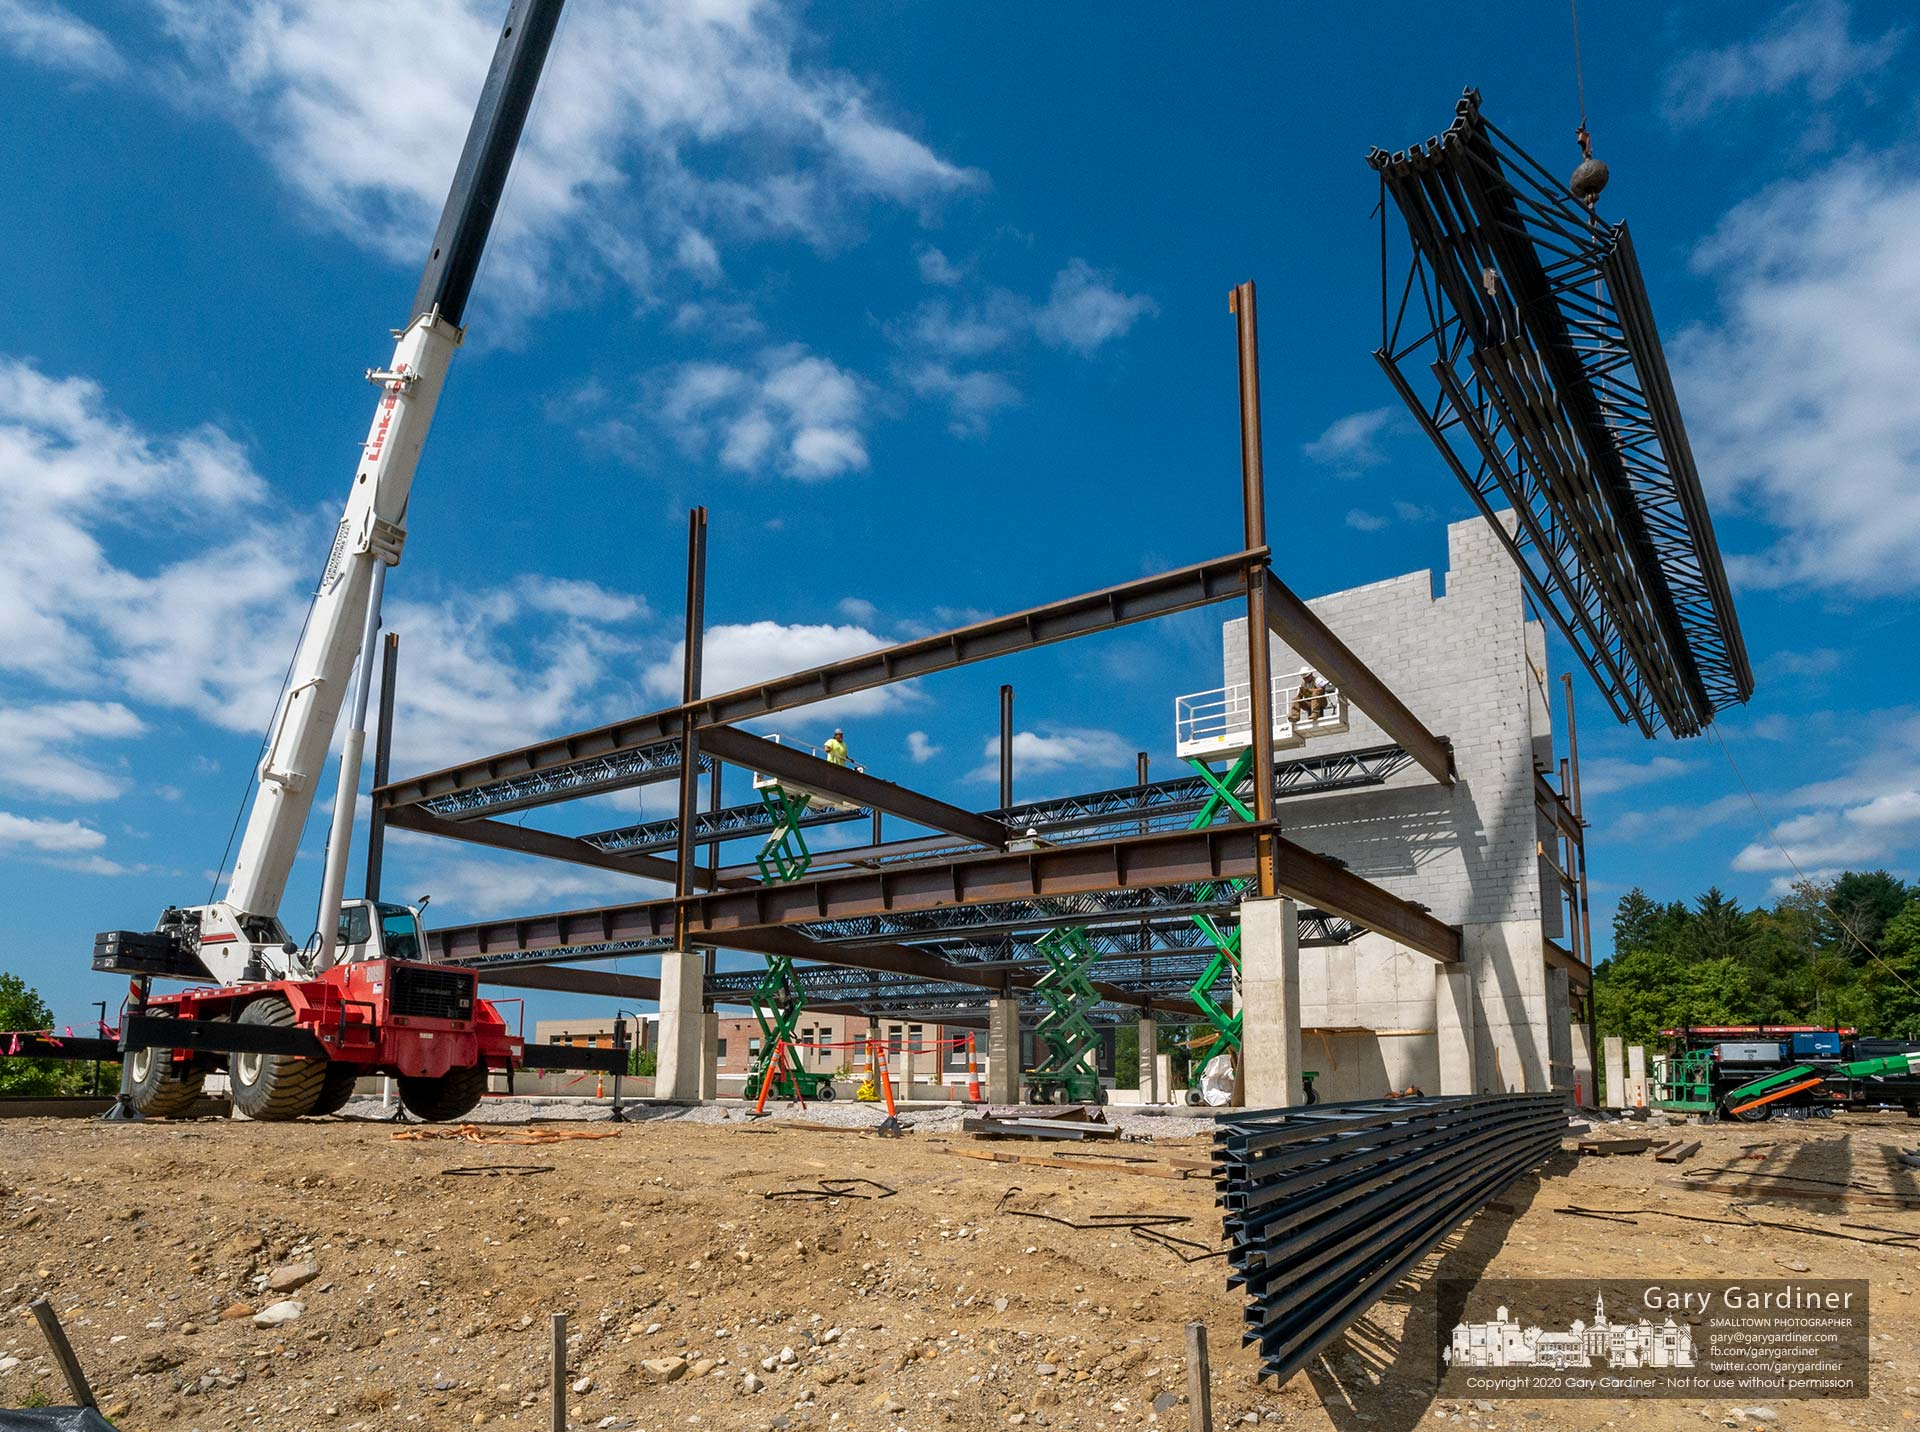 A set of steel struts are lifted to the second floor of the new COPC office building under construction behind the company's two other buildings on Africa Road. My Final Photo for Aug. 31, 2020.